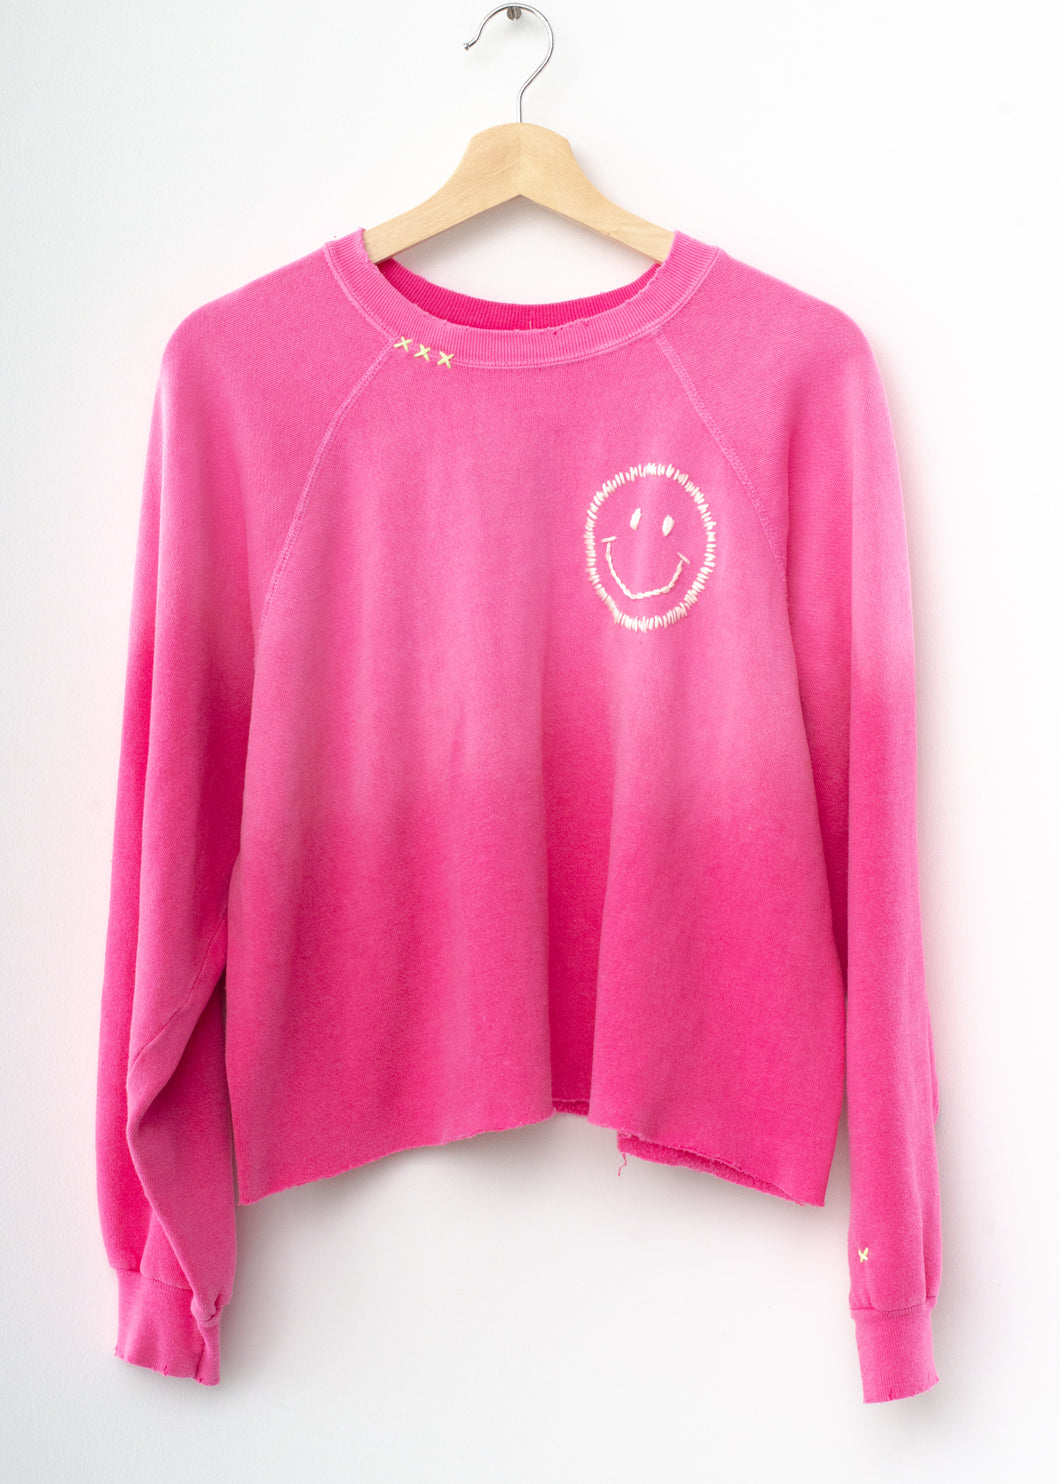 Happy Face Cropped Sweatshirt - Hot Pink